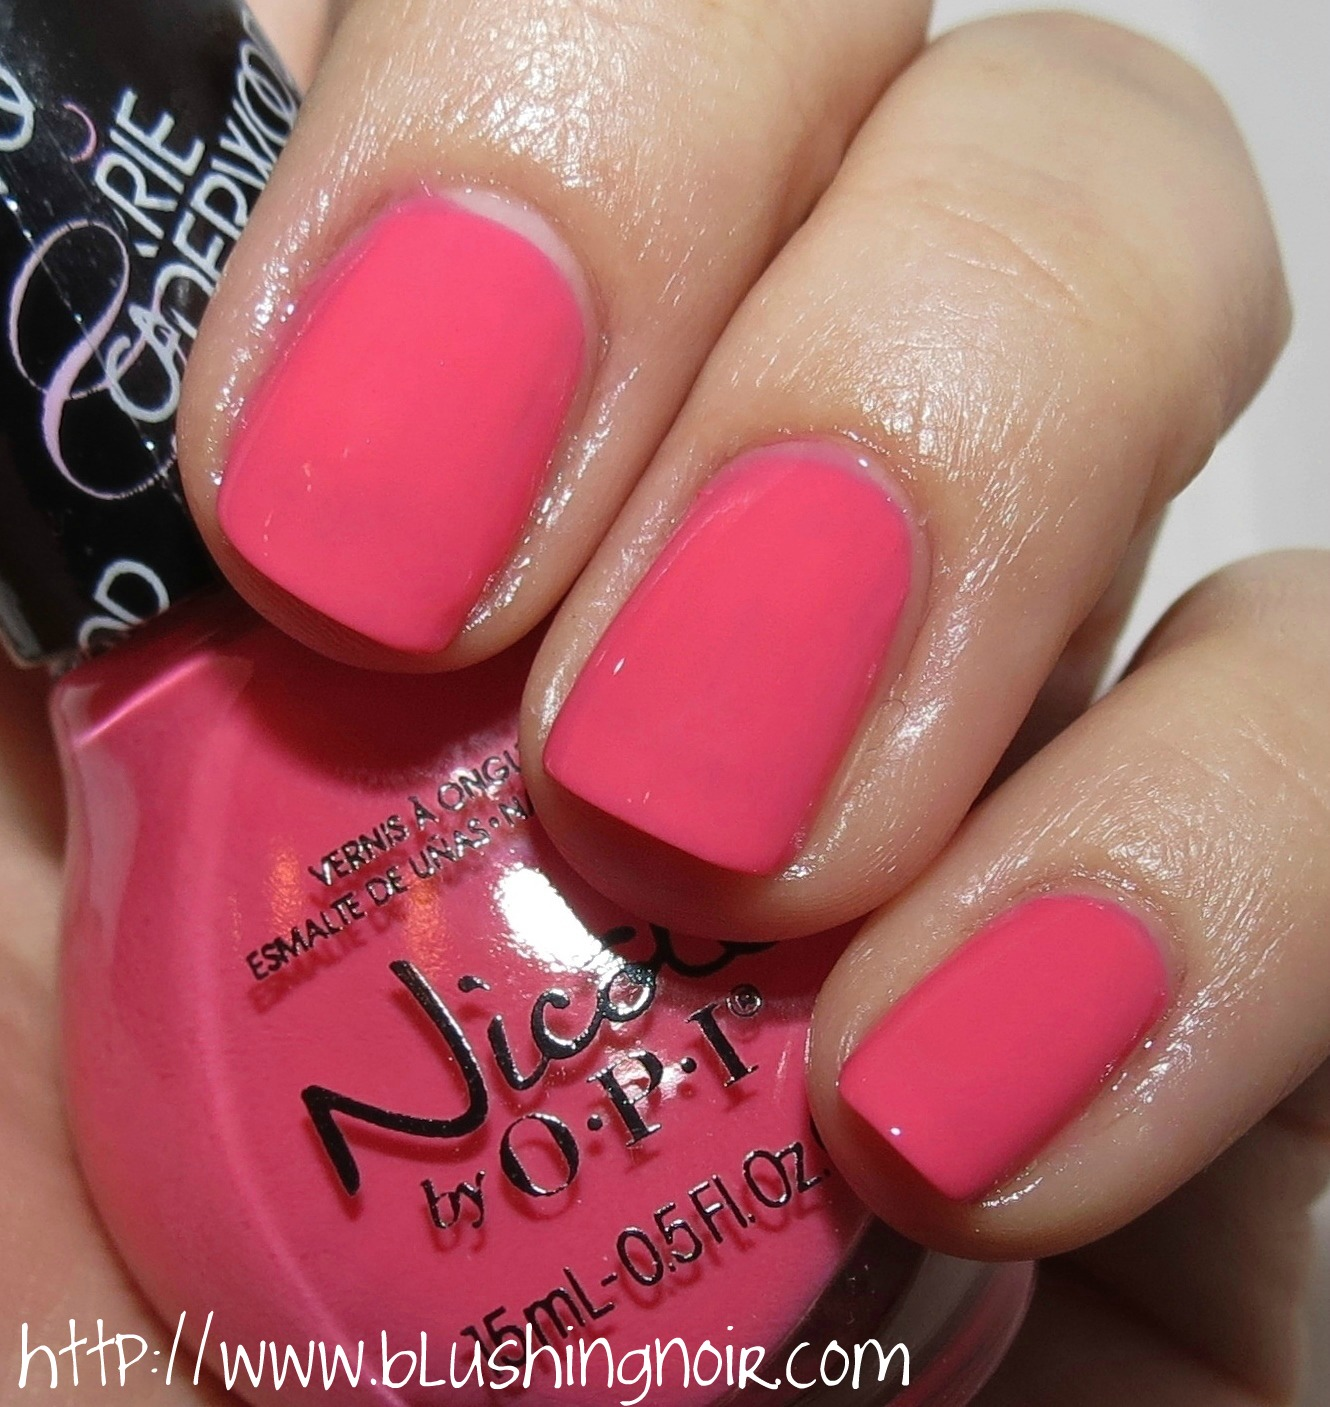 Nicole By Opi Carrie Underwood Nail Polish Collection Swatches Jafra Nourishing Hand Ampamp Lotion Color Me Country